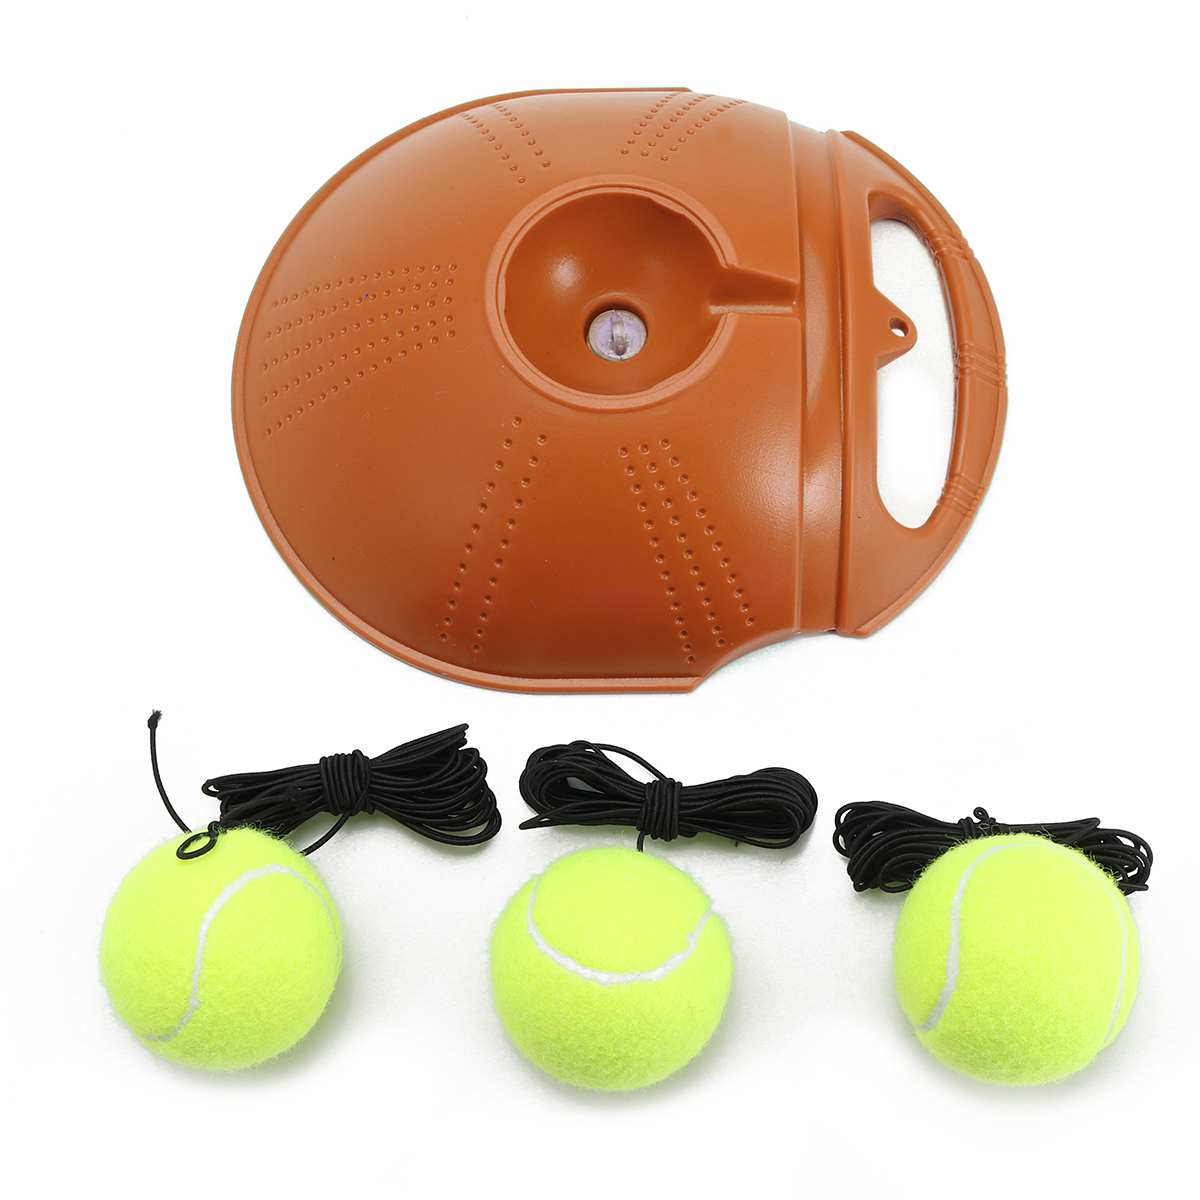 Tennis Trainer and Self-study Tennis Training Tool with Rebound Balls and Baseboard 11